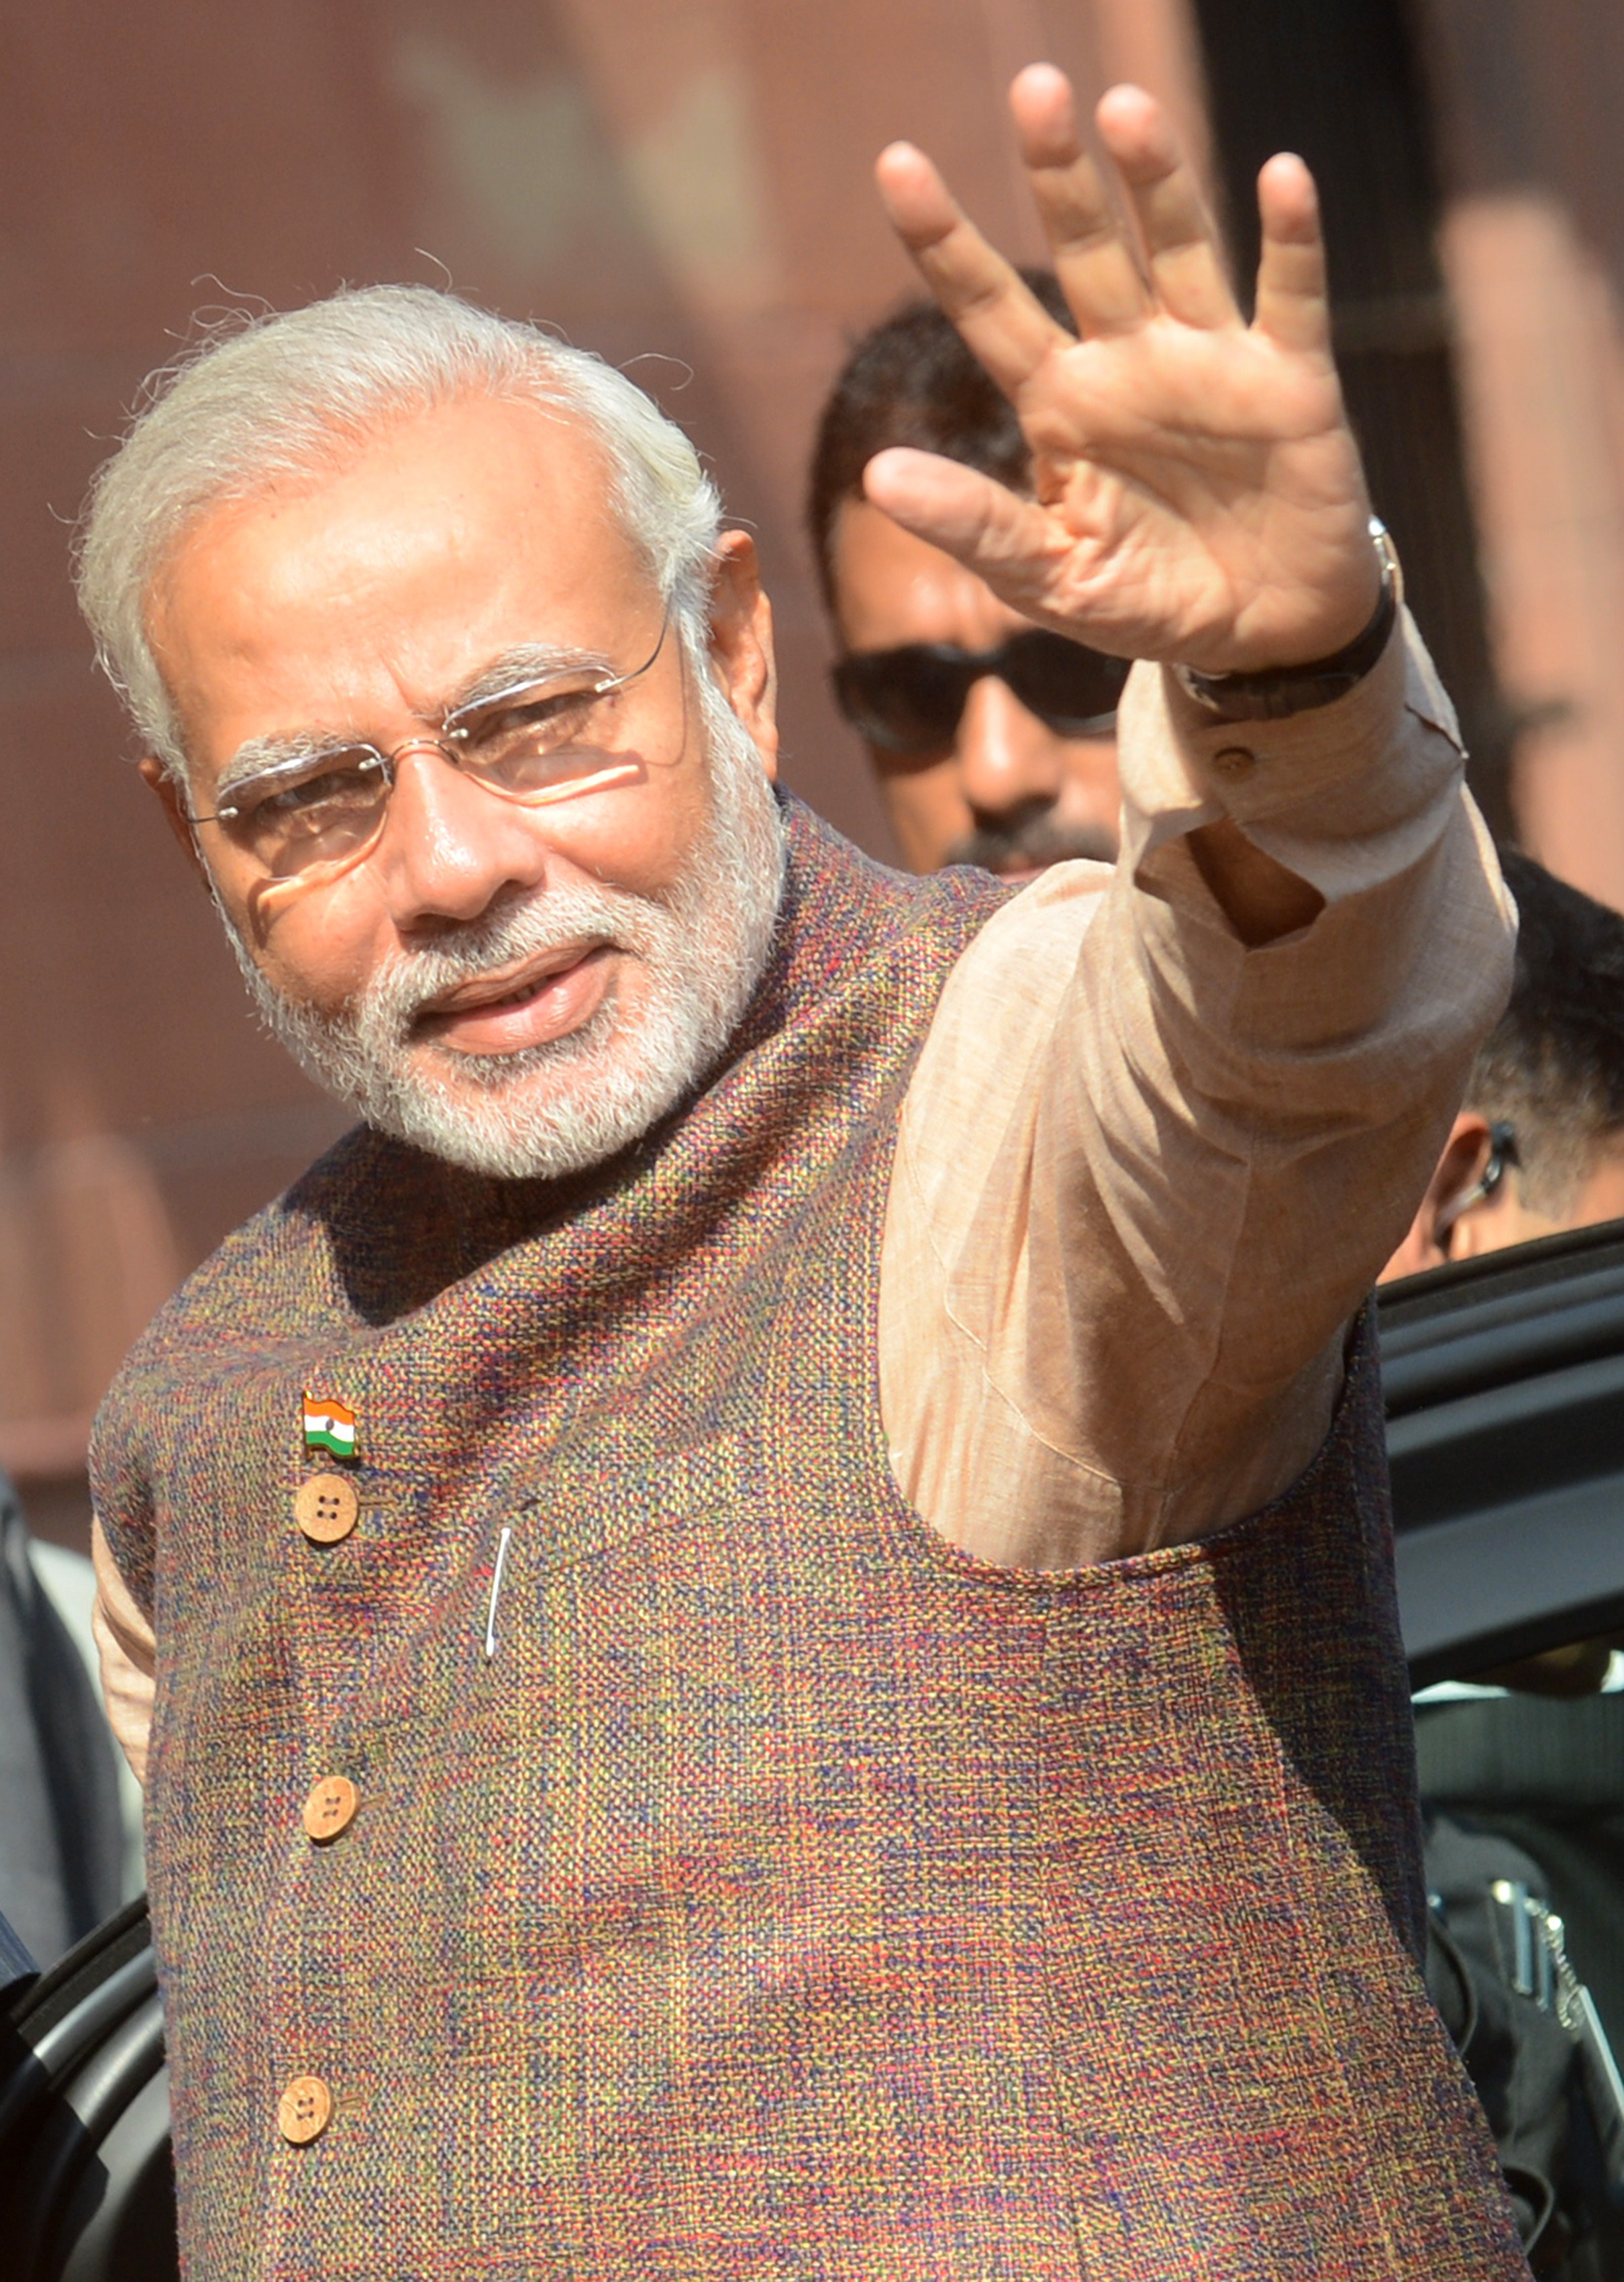 Prime Minister Narendra Modi (C) gestures during his arrival at the Prime Minister's Office at South Block in New Delhi on May 27, 2014.